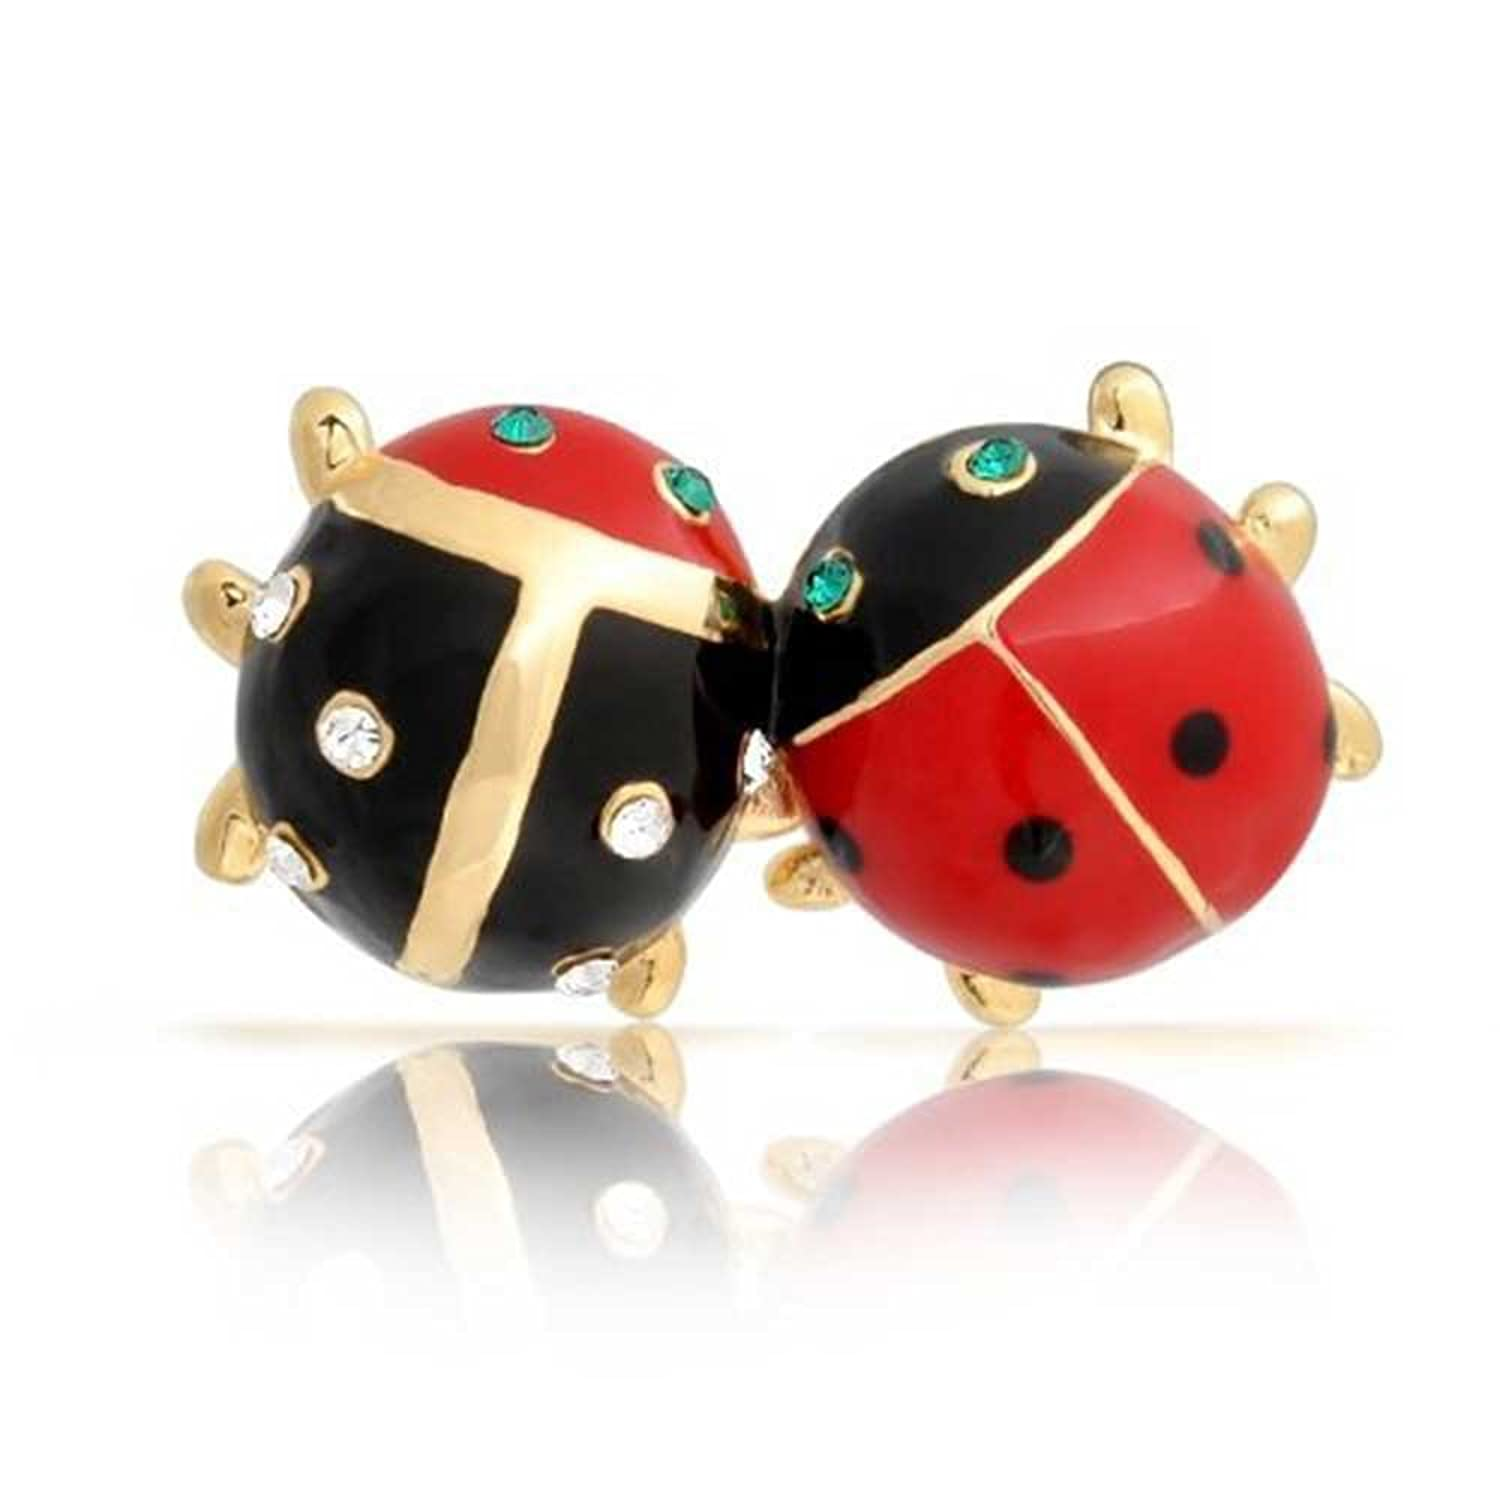 Amazon.com: Bling Jewelry Gold Plated Enamel Insect Bug Crystal Ladybug  Brooch Pin: Brooches And Pins: Jewelry